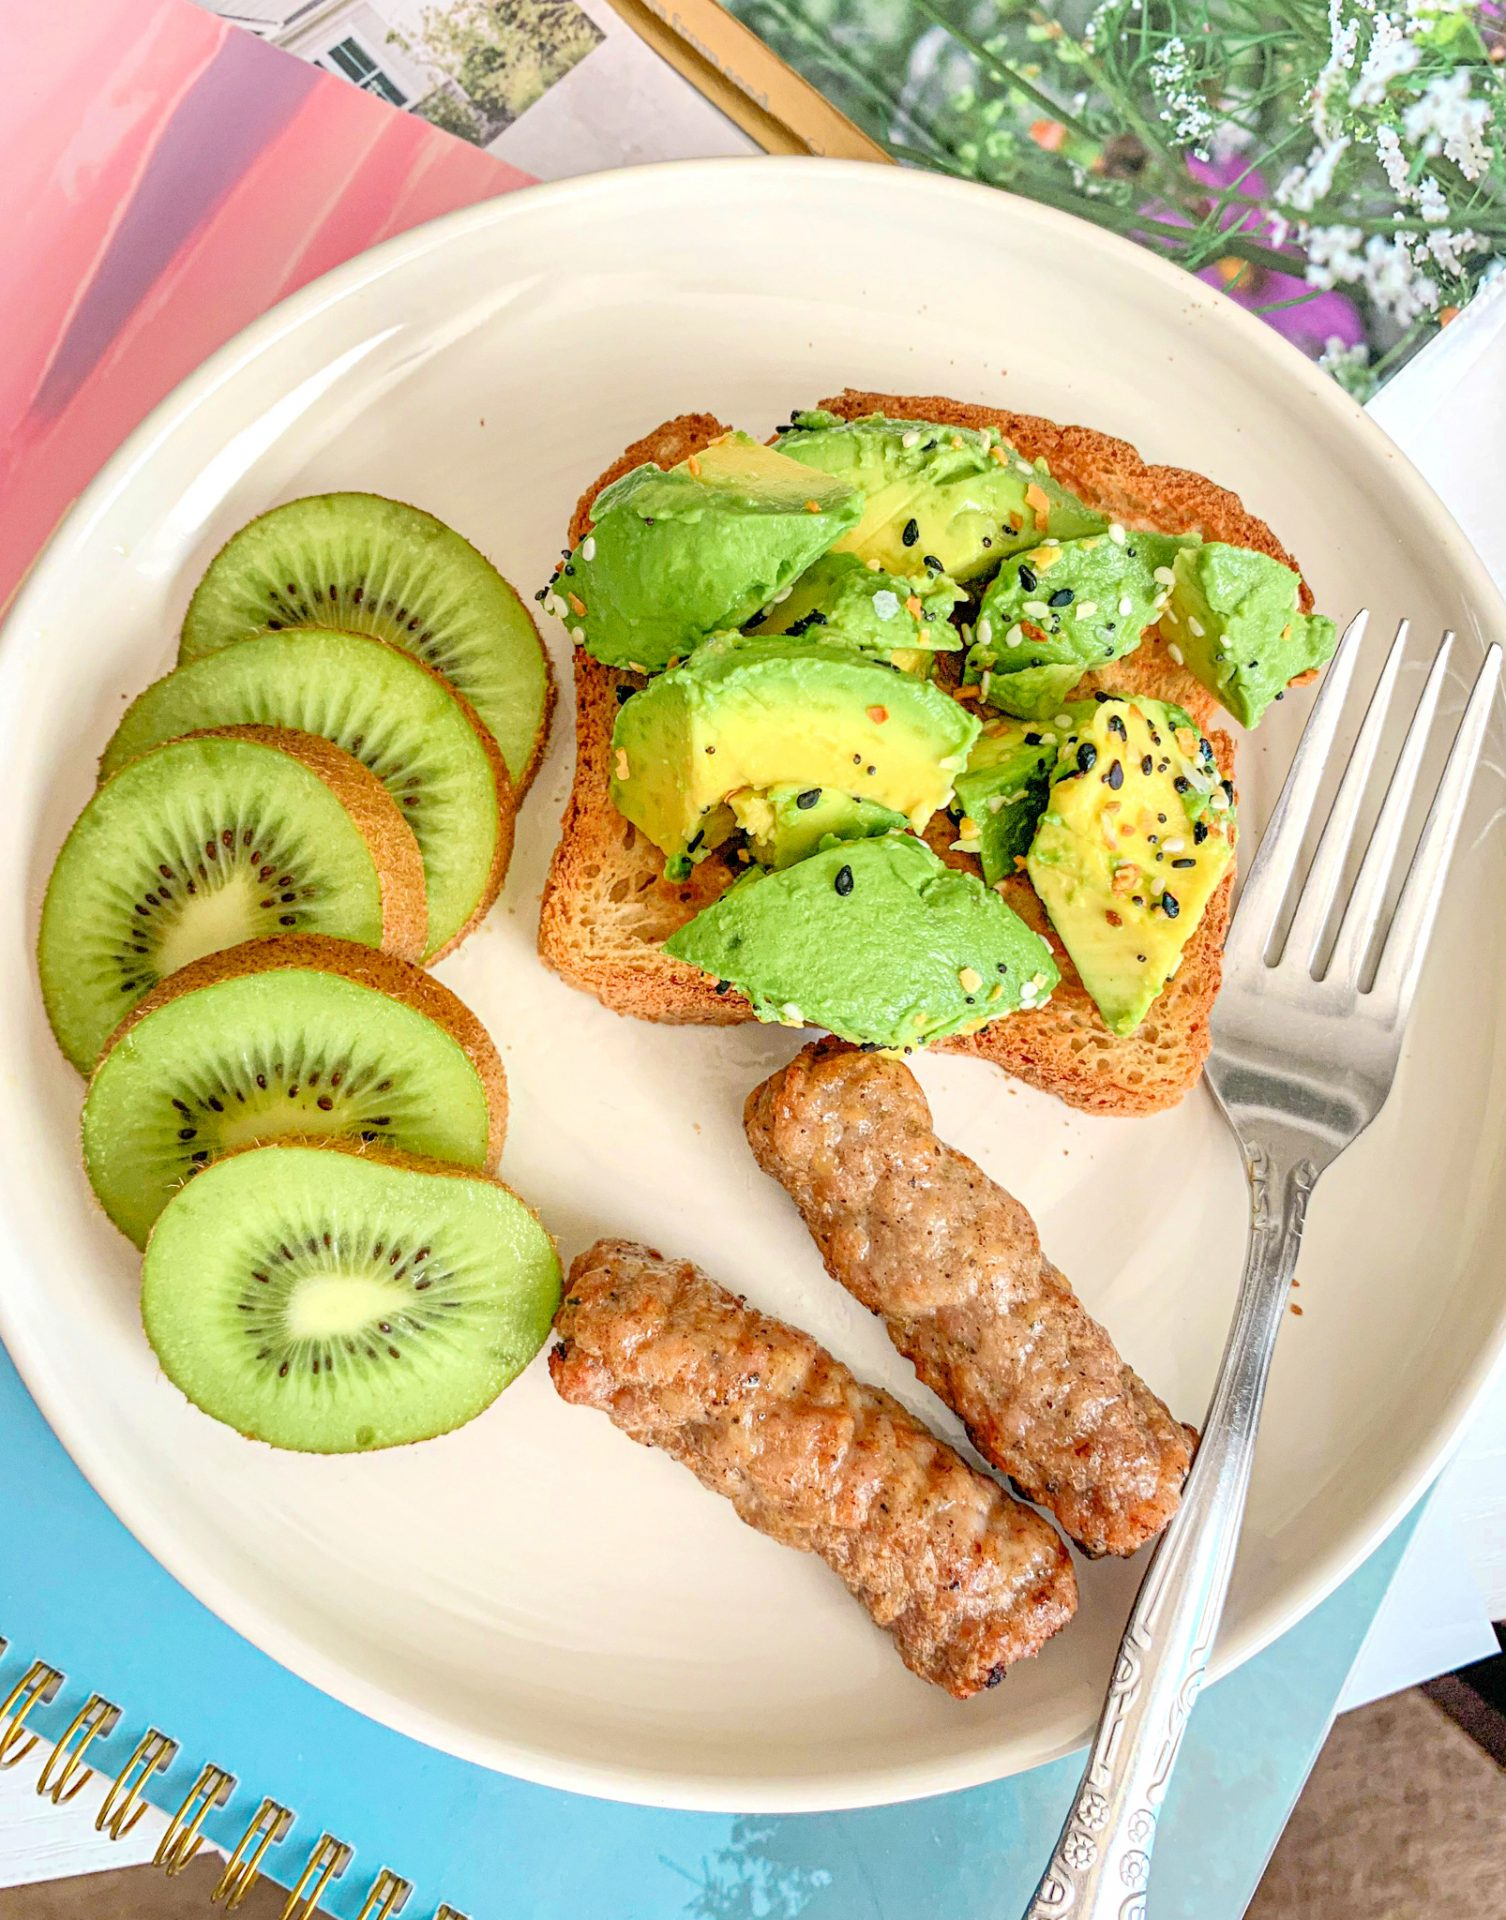 applegate chicken maple sausage with gluten-free avocado toast